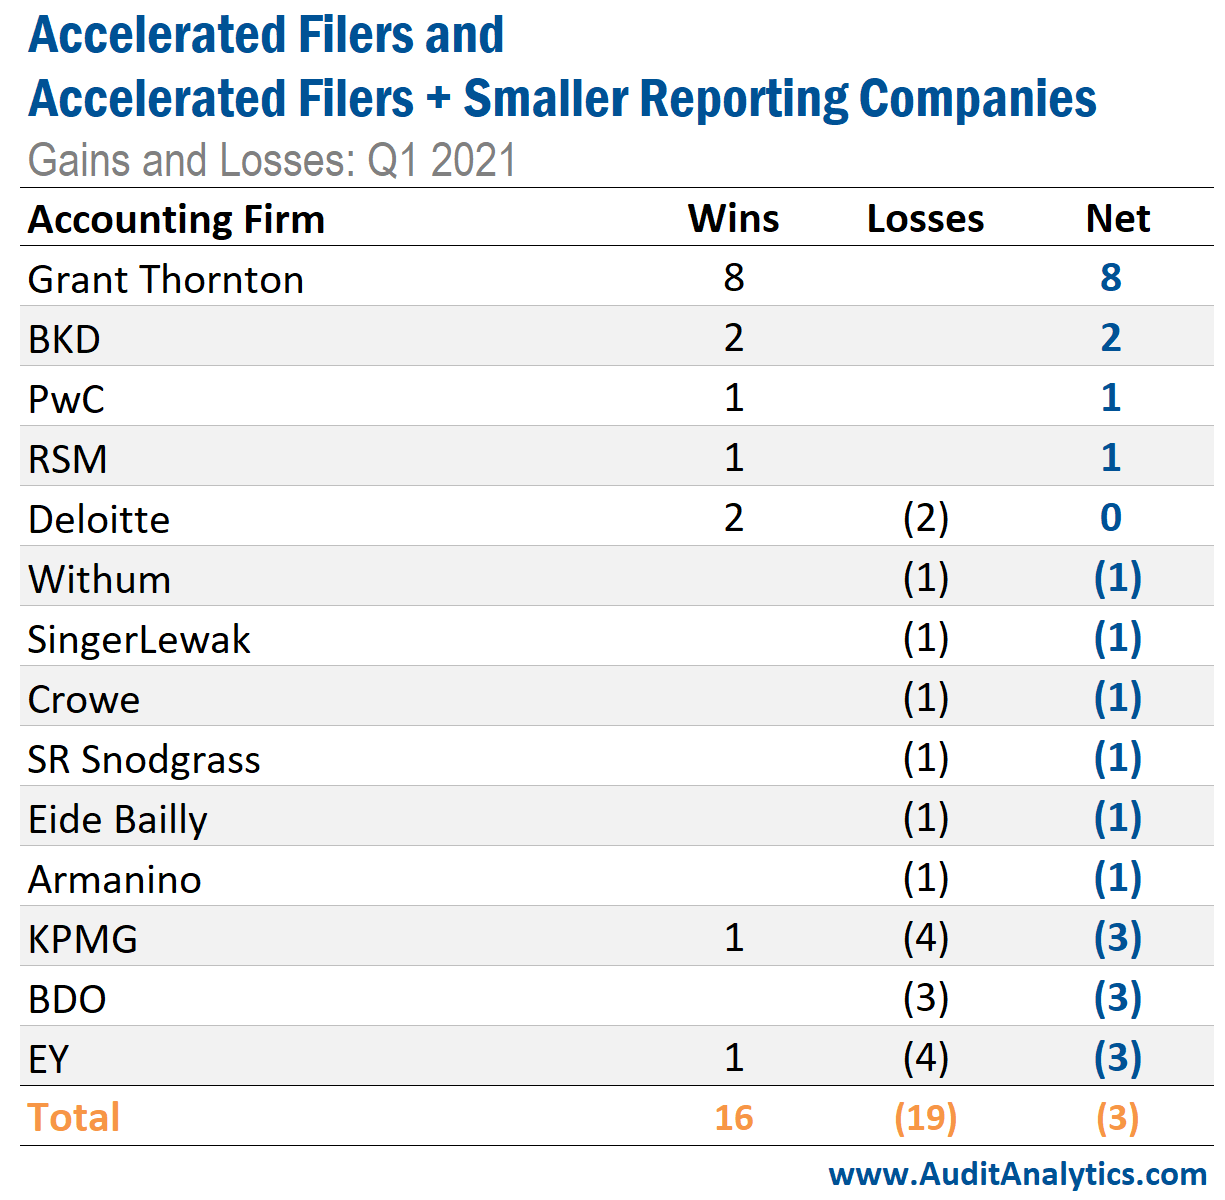 Accelerated Filers and Accelerated Filers + Smaller Reporting Companies Gains and Losses: Q1 2021